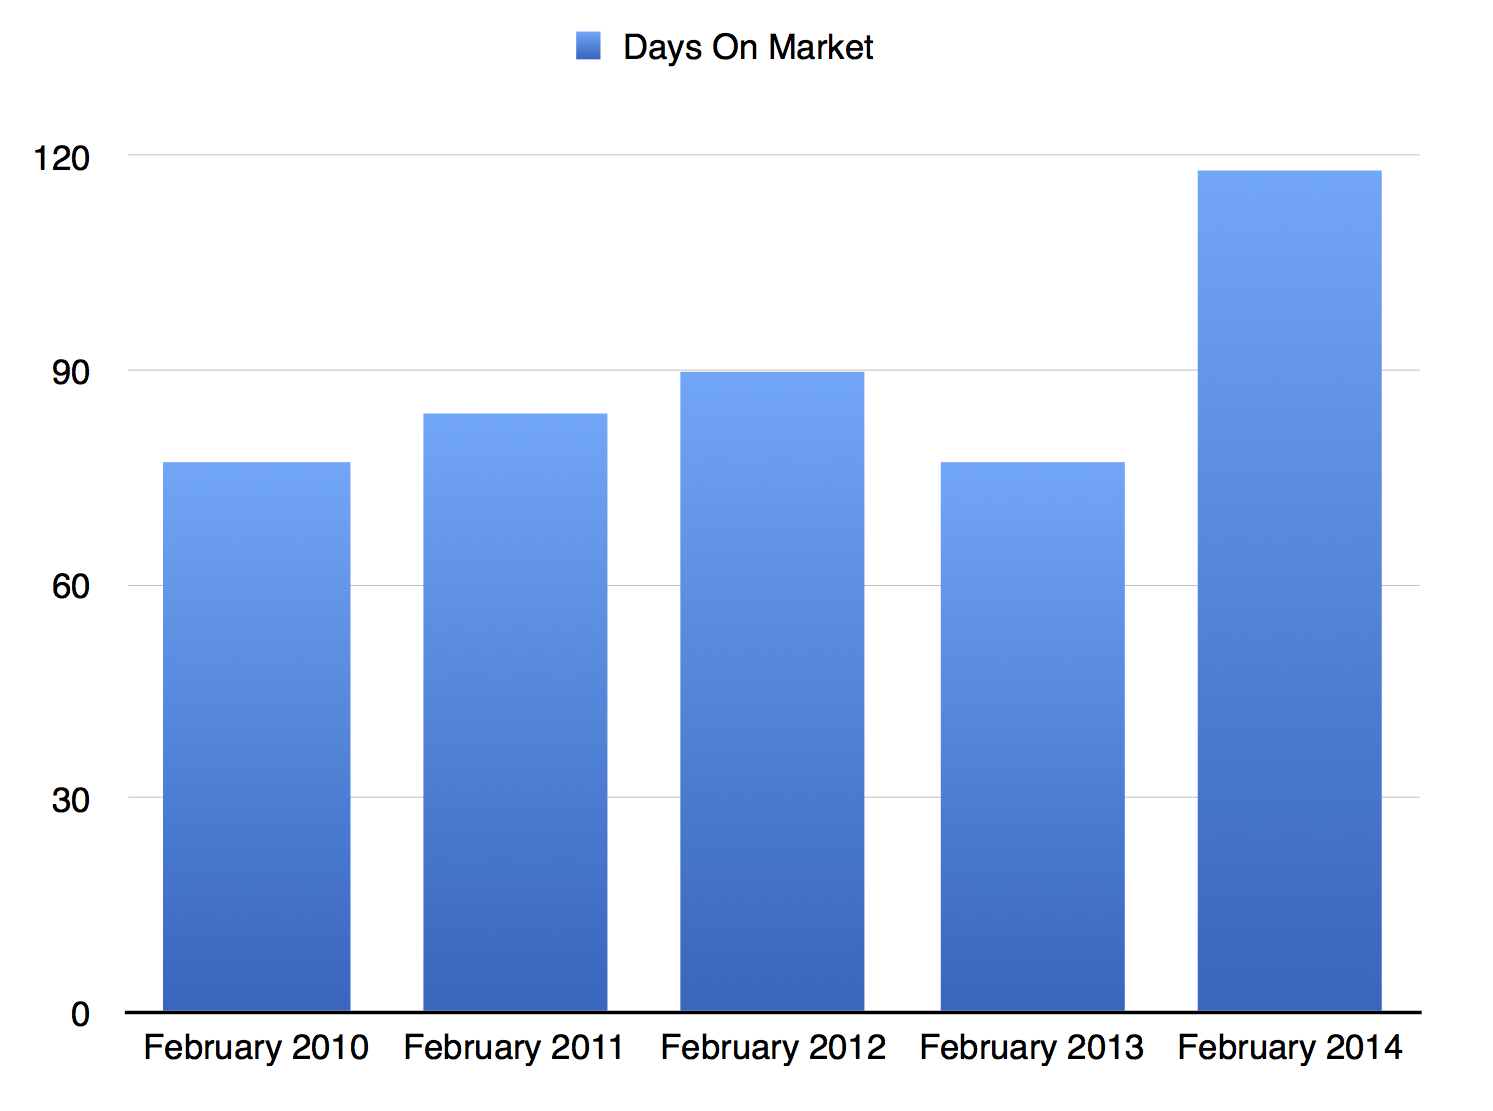 February Days On Mkt 2010-2014